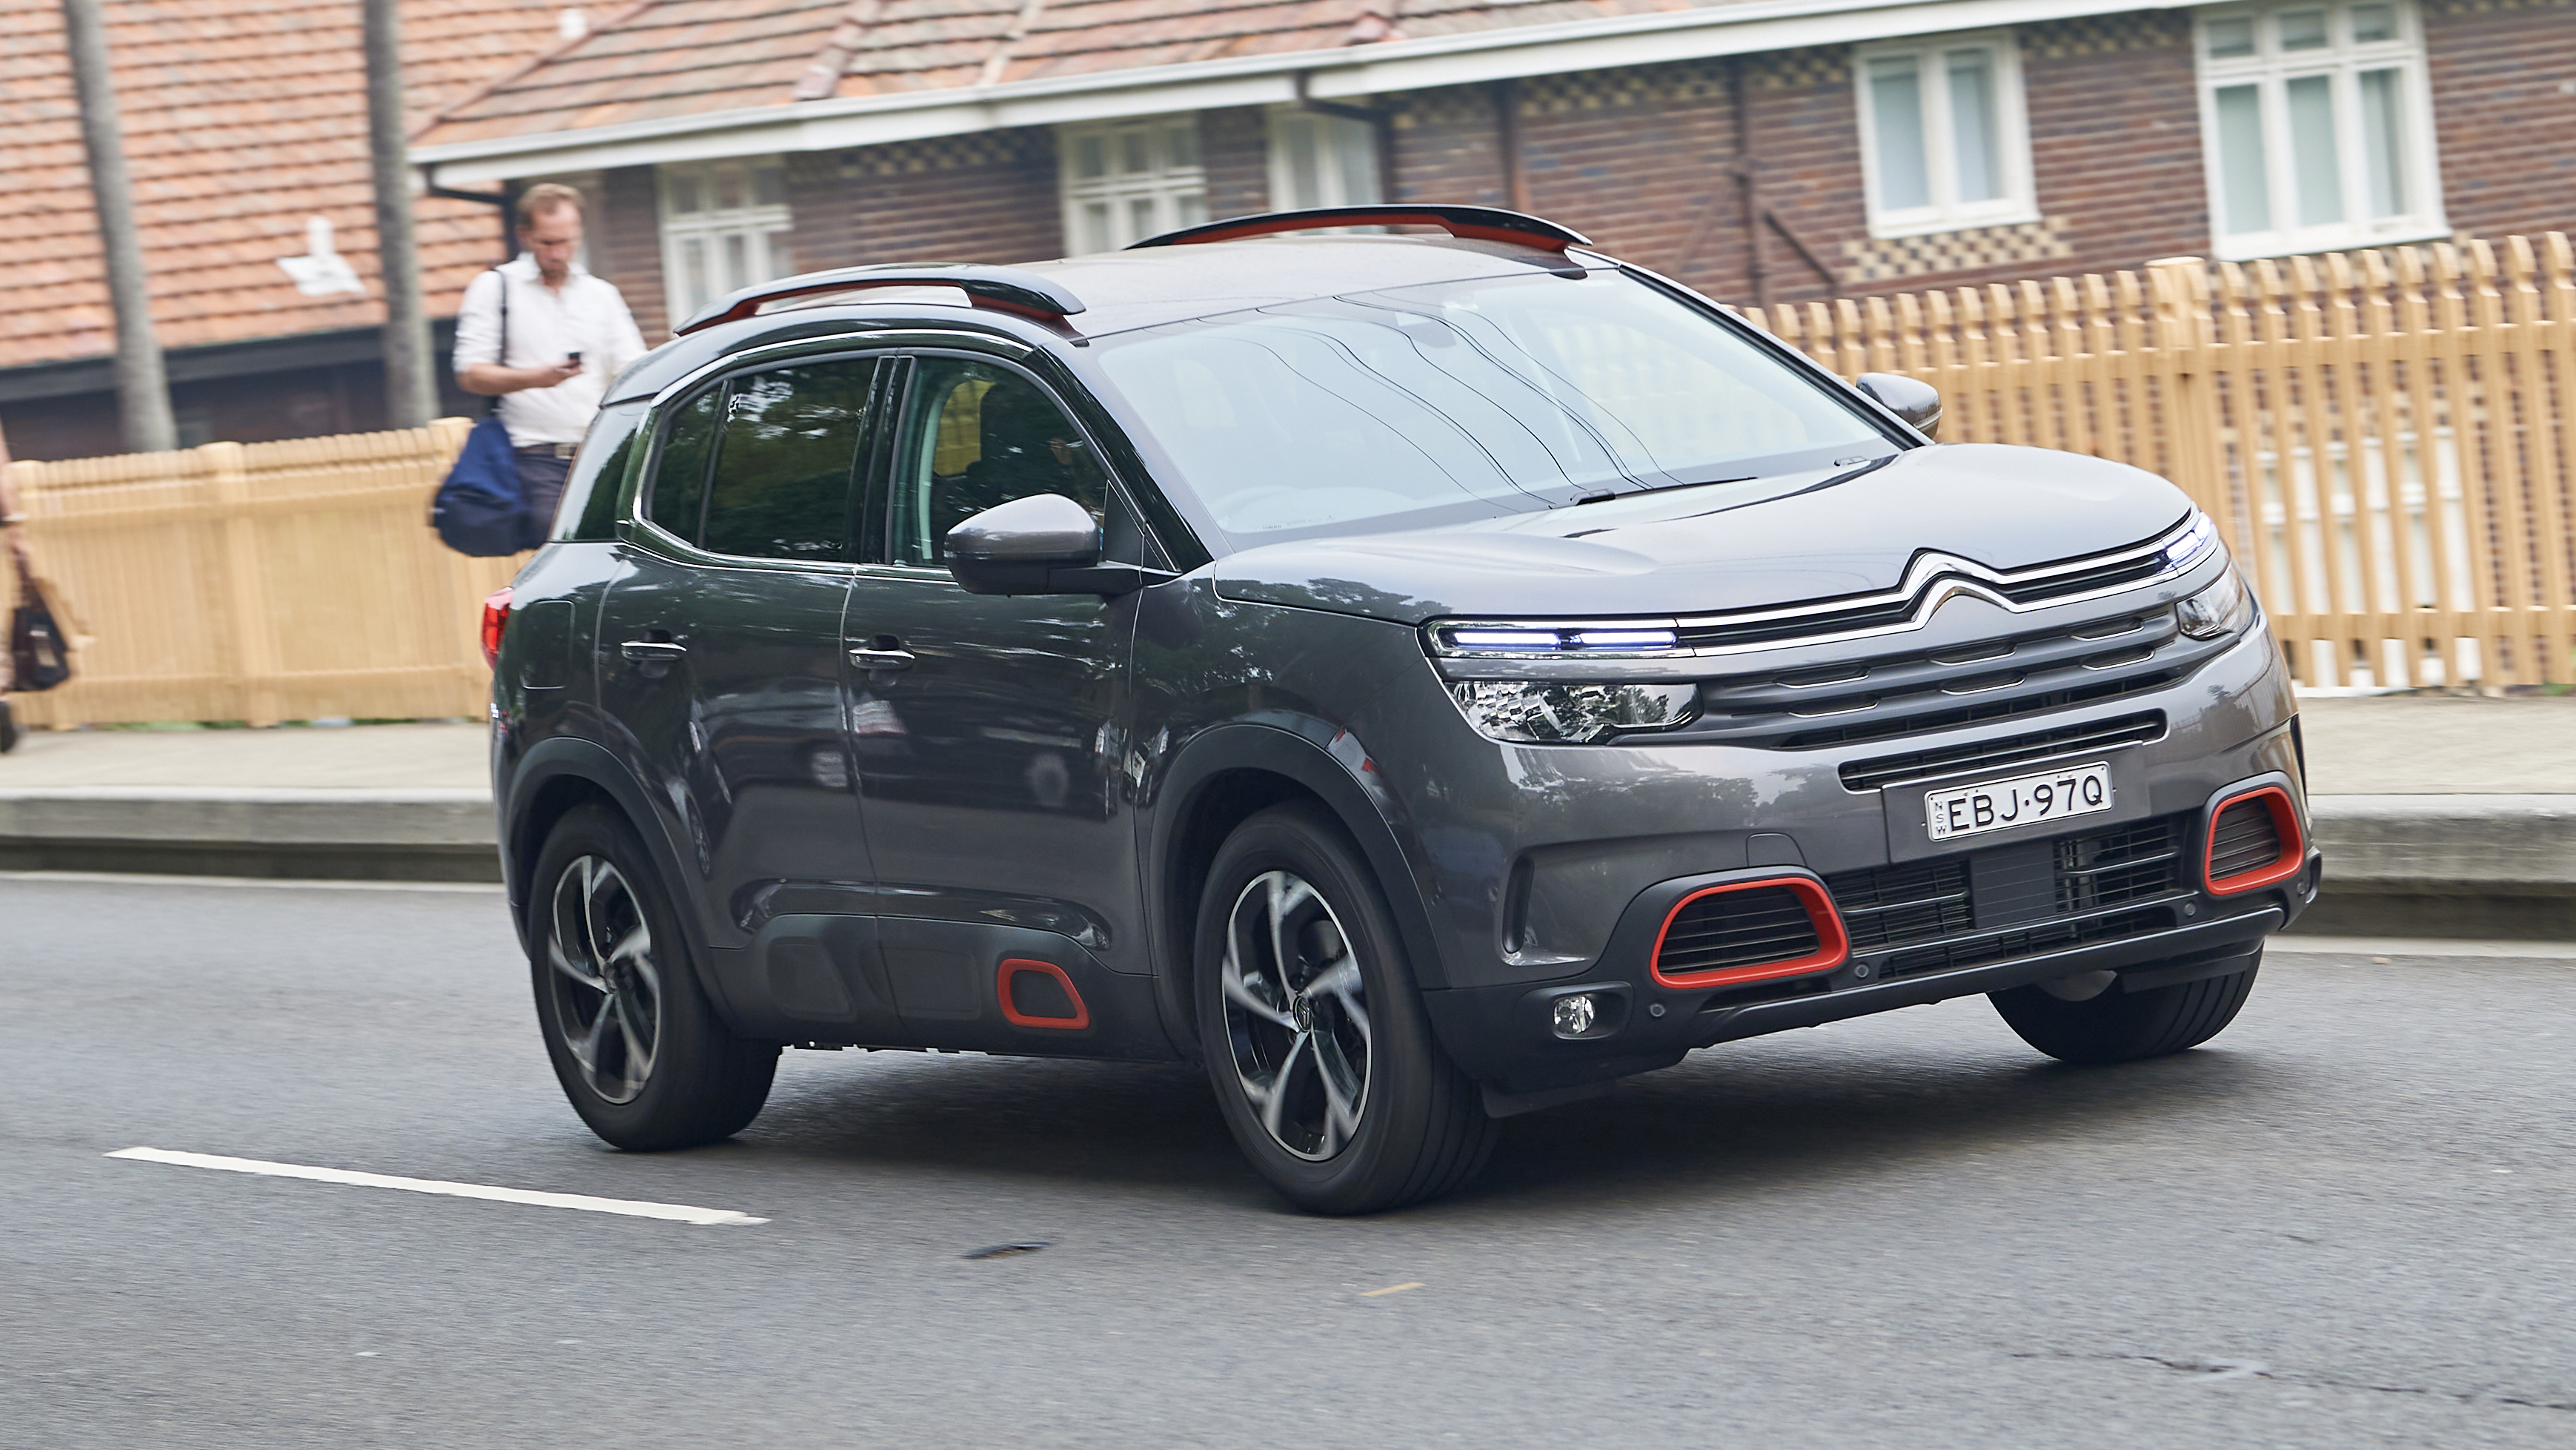 Family Review: 2019 Citroen C5 Aircross Feel